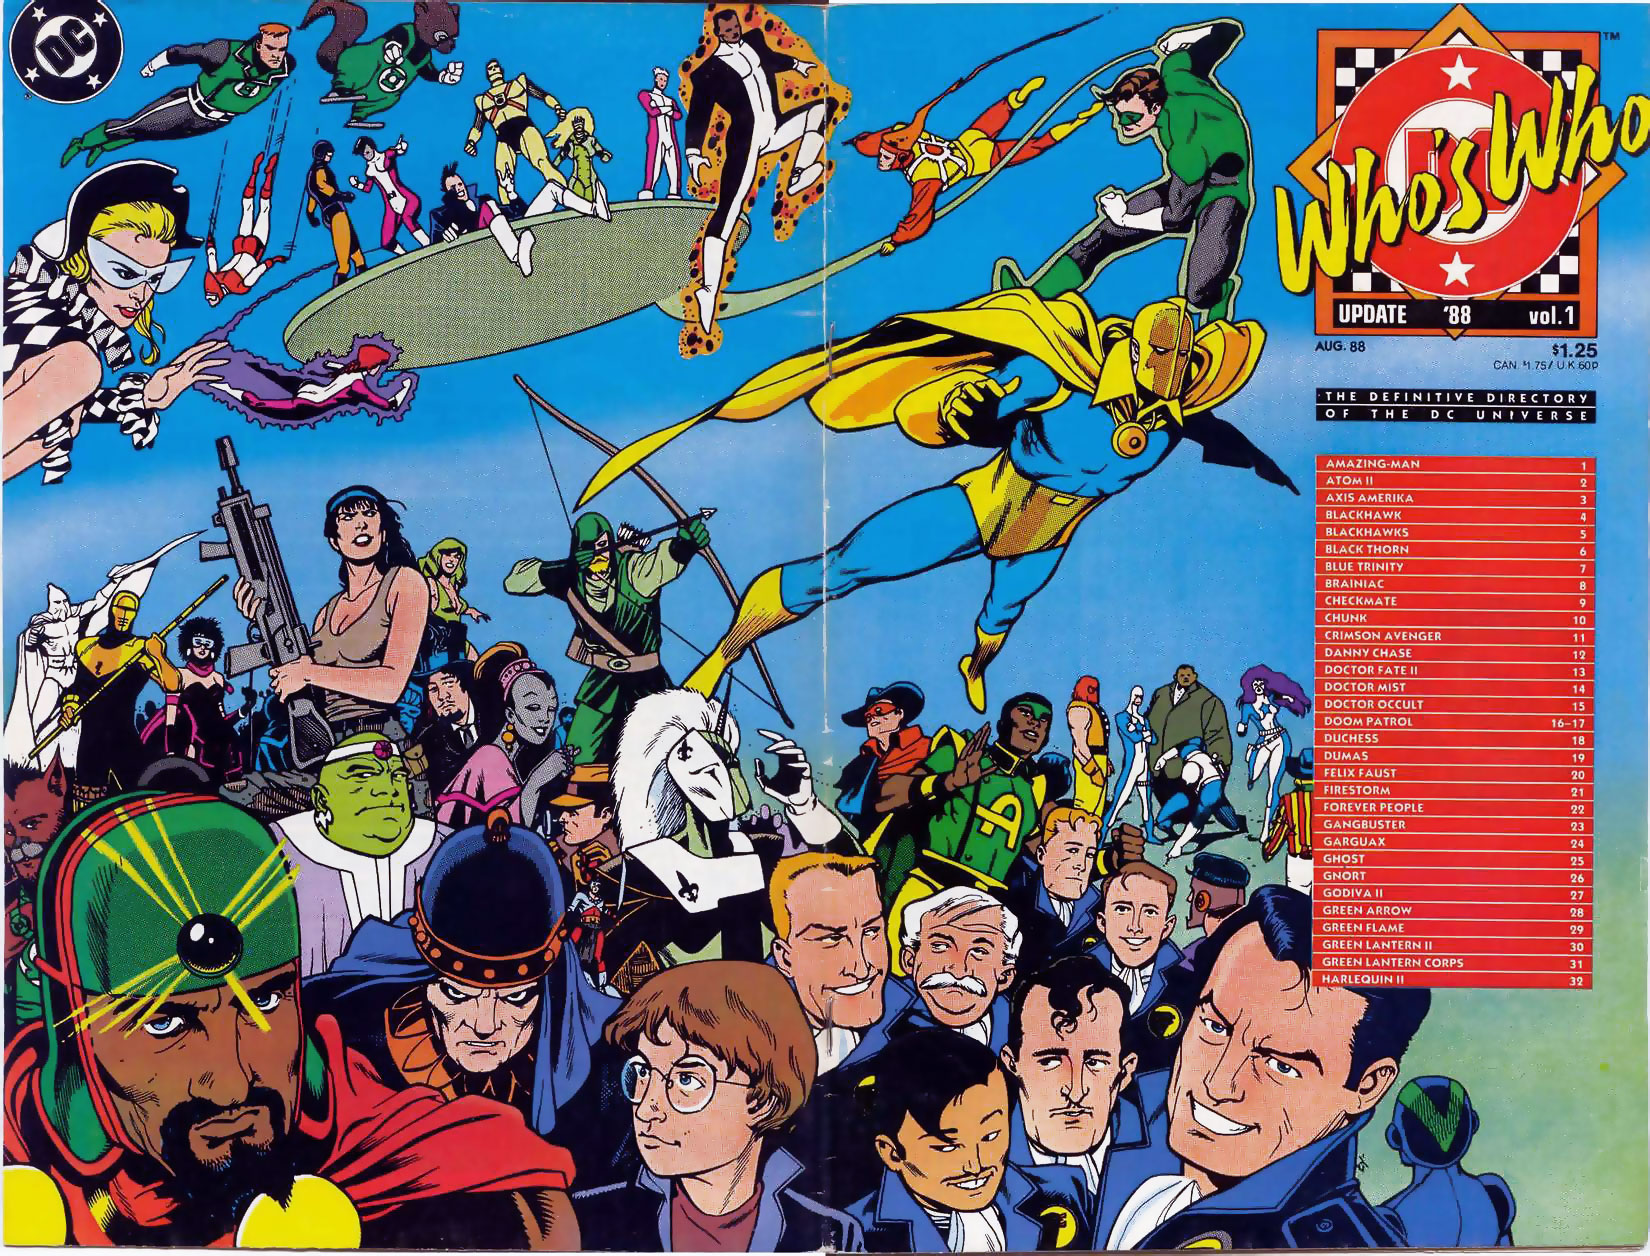 Who's Who: Update '88 Volume 1 cover by Ty Templeton